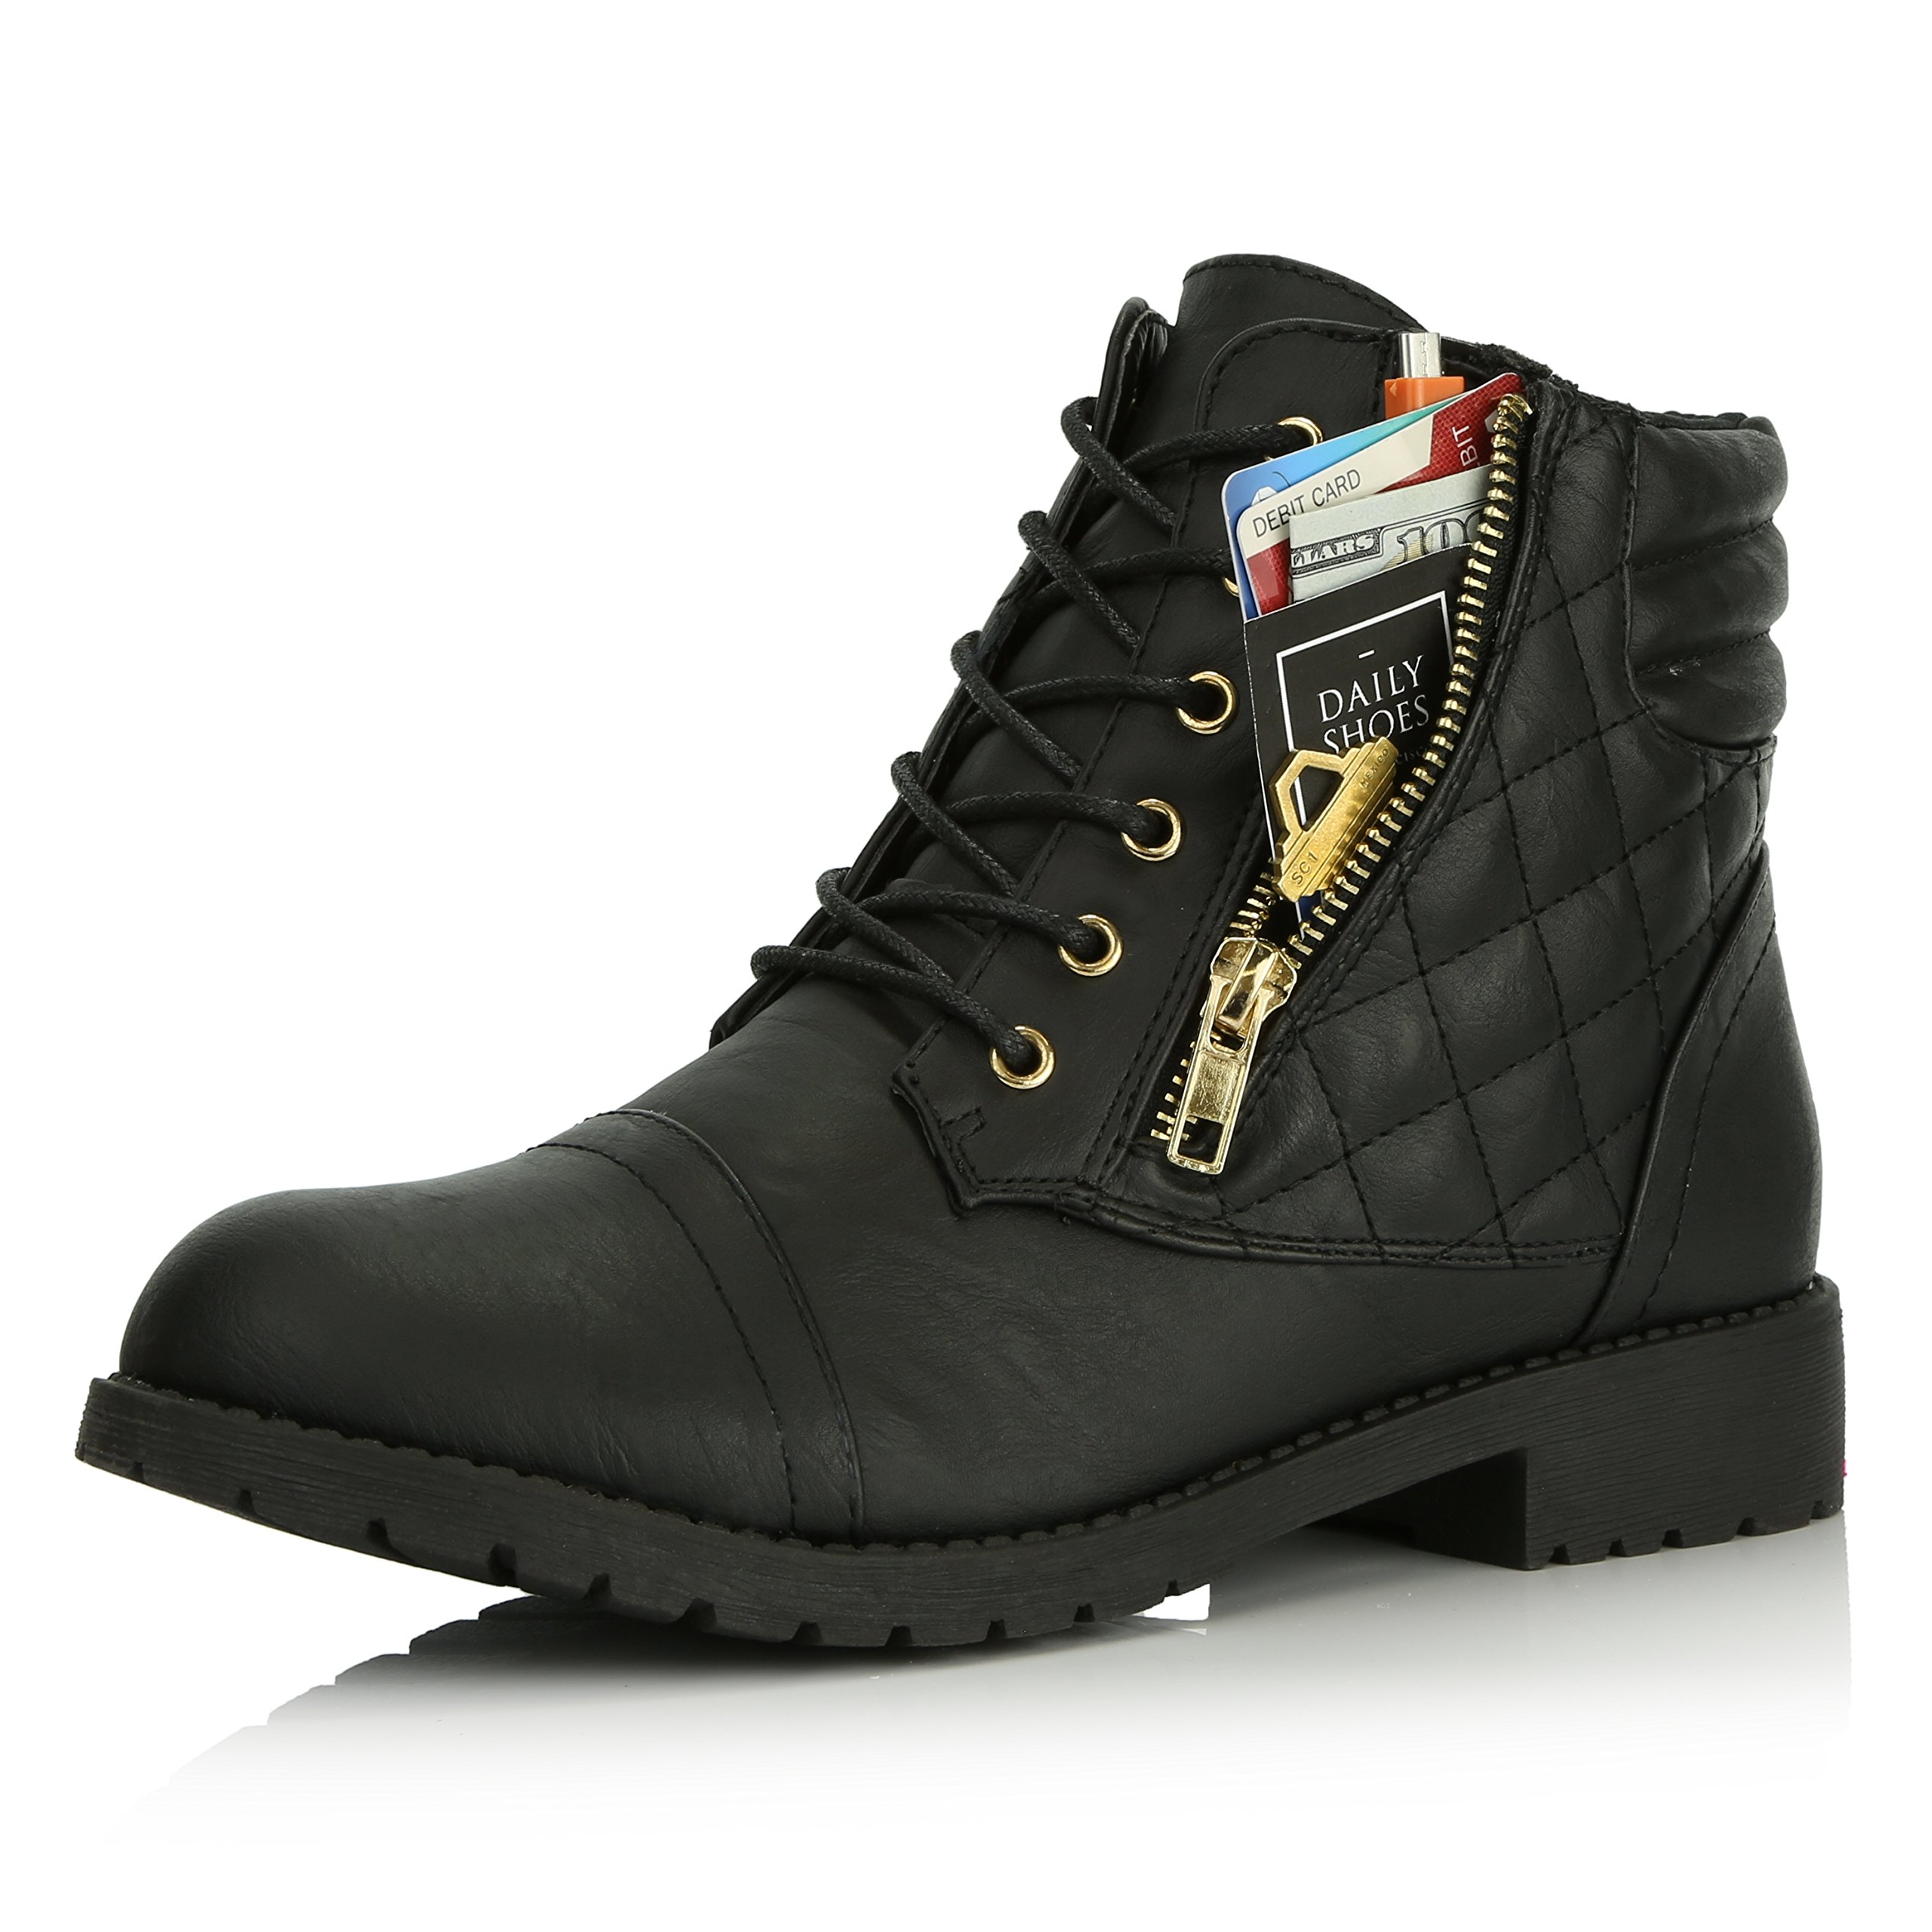 DailyShoes Women's Military Lace up Buckle Combat Boots Ankle High Exclusive Credit Card Pocket, Black Pu, 7